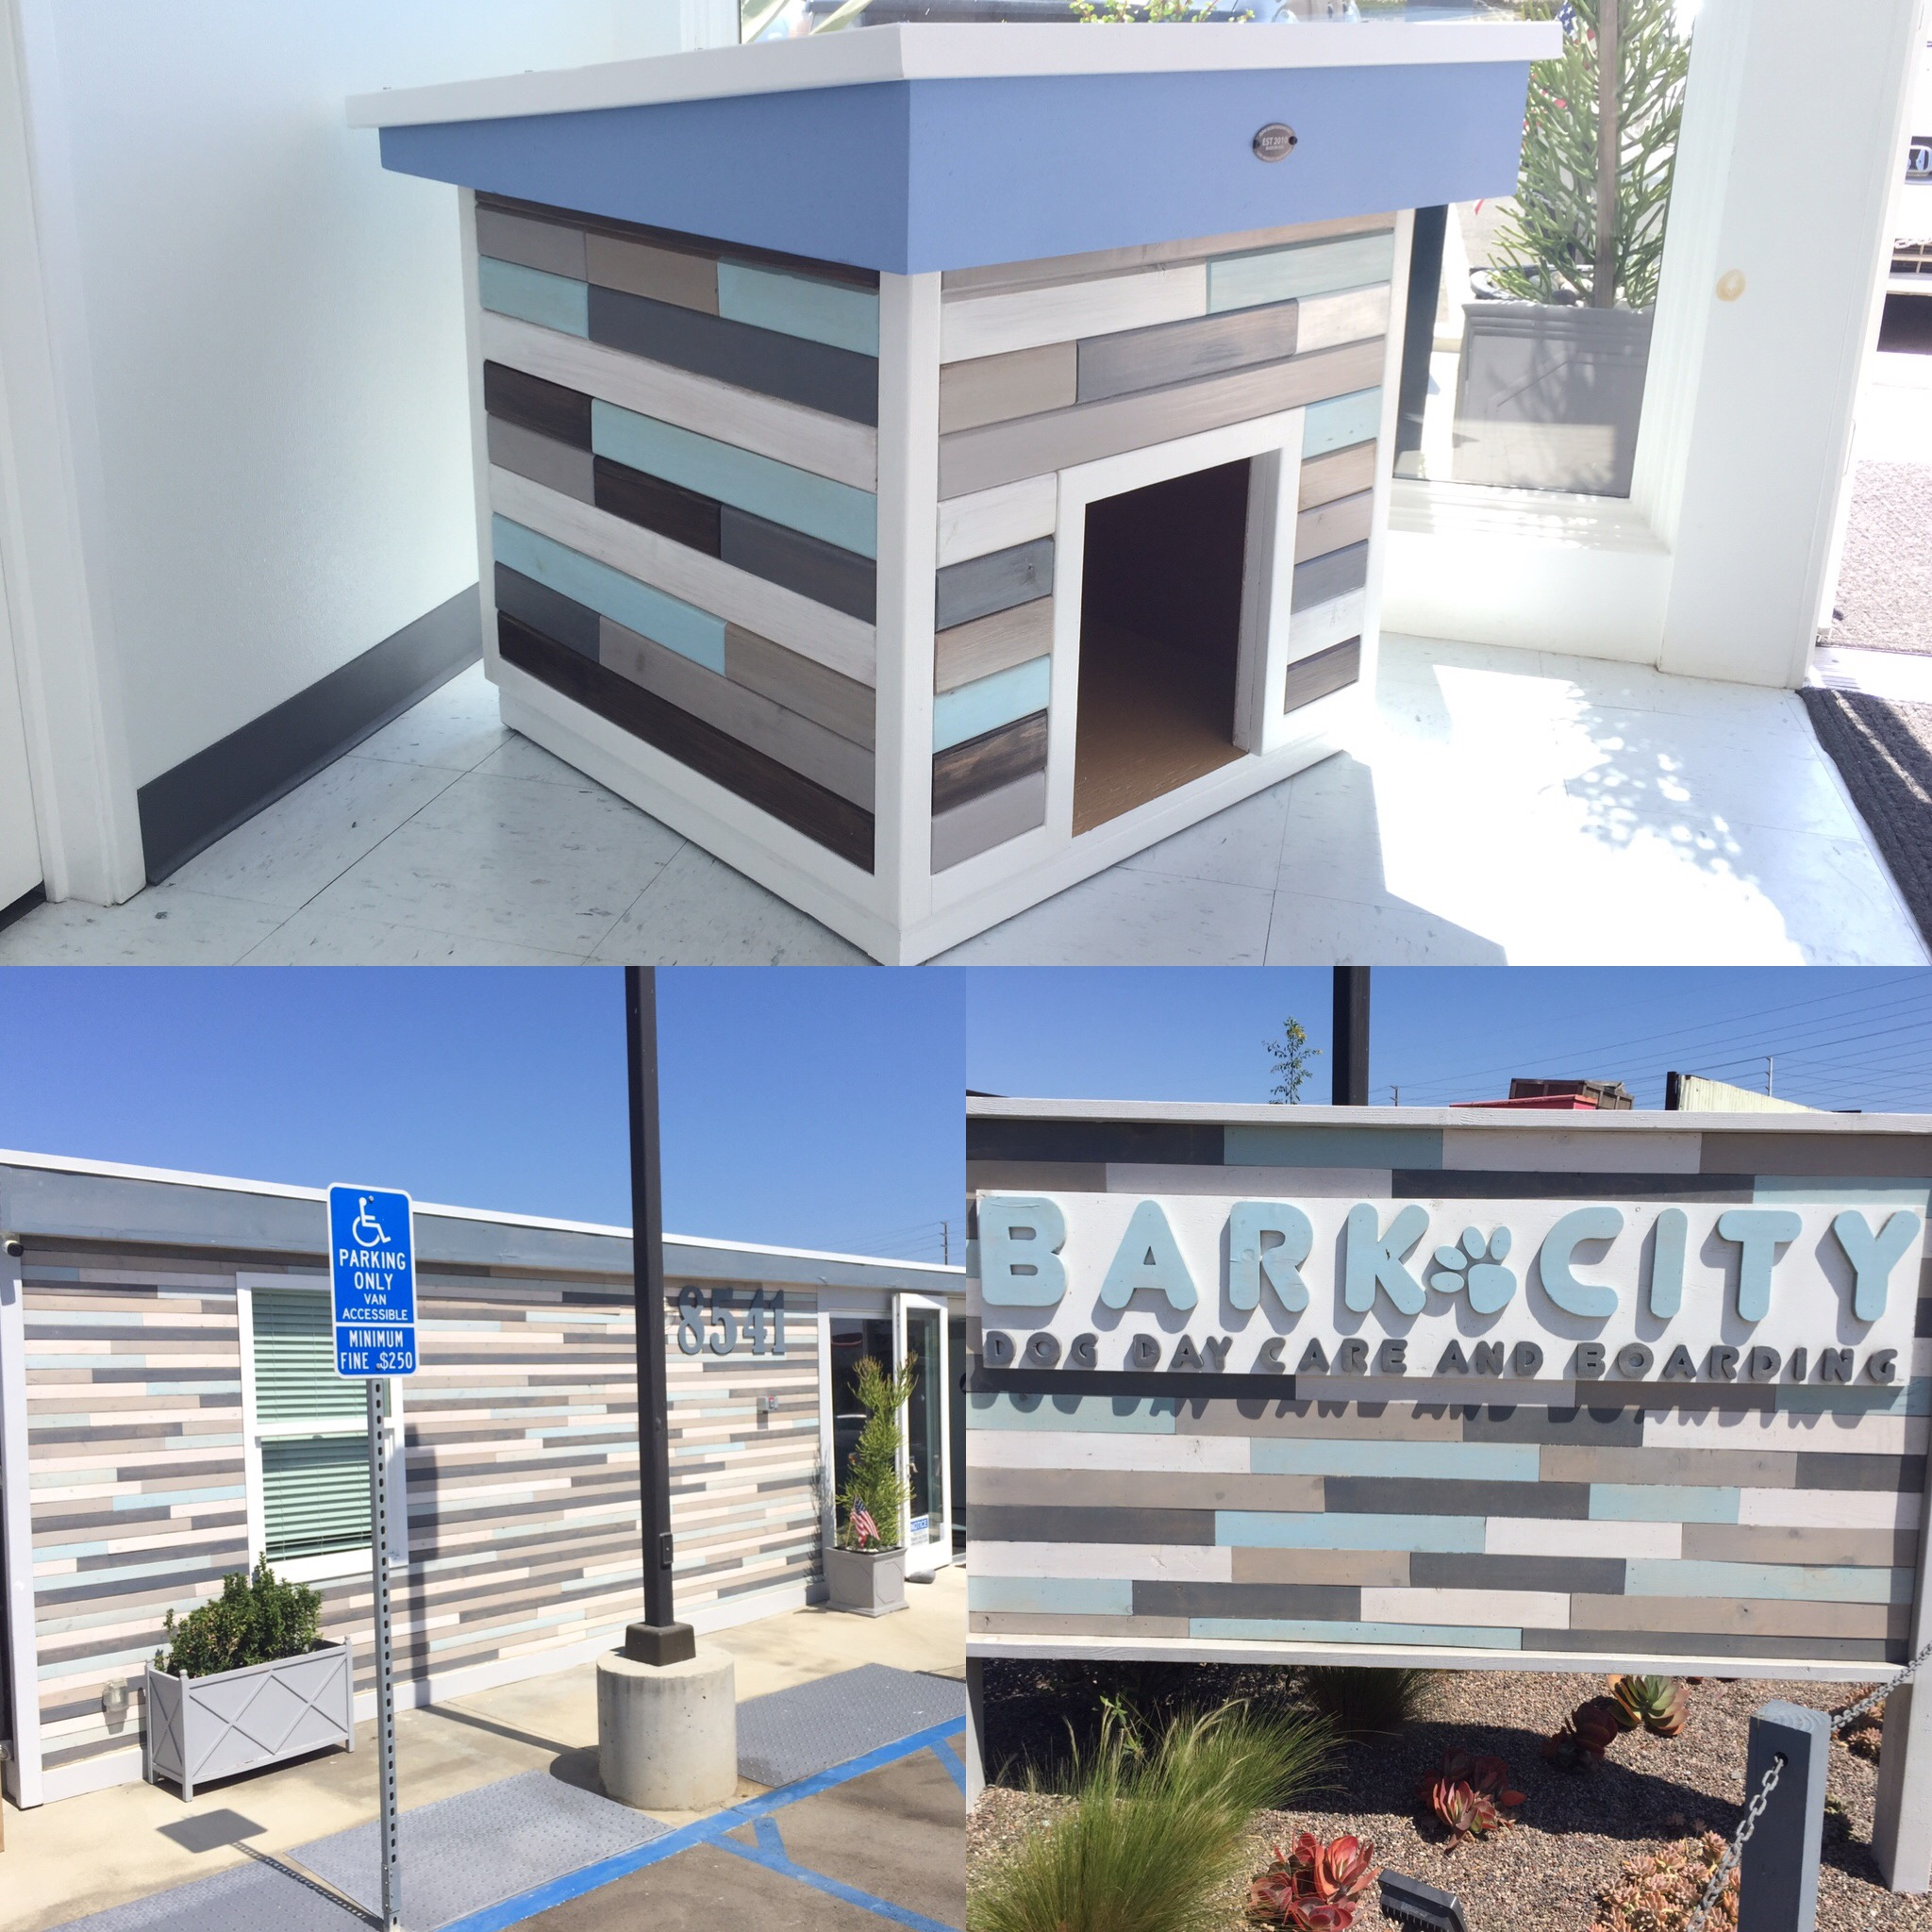 A Special Thanks To Our Friends At Bark City In Huntington Beach For Giving Us The Opportunity Build Them Dog House Match Their Building